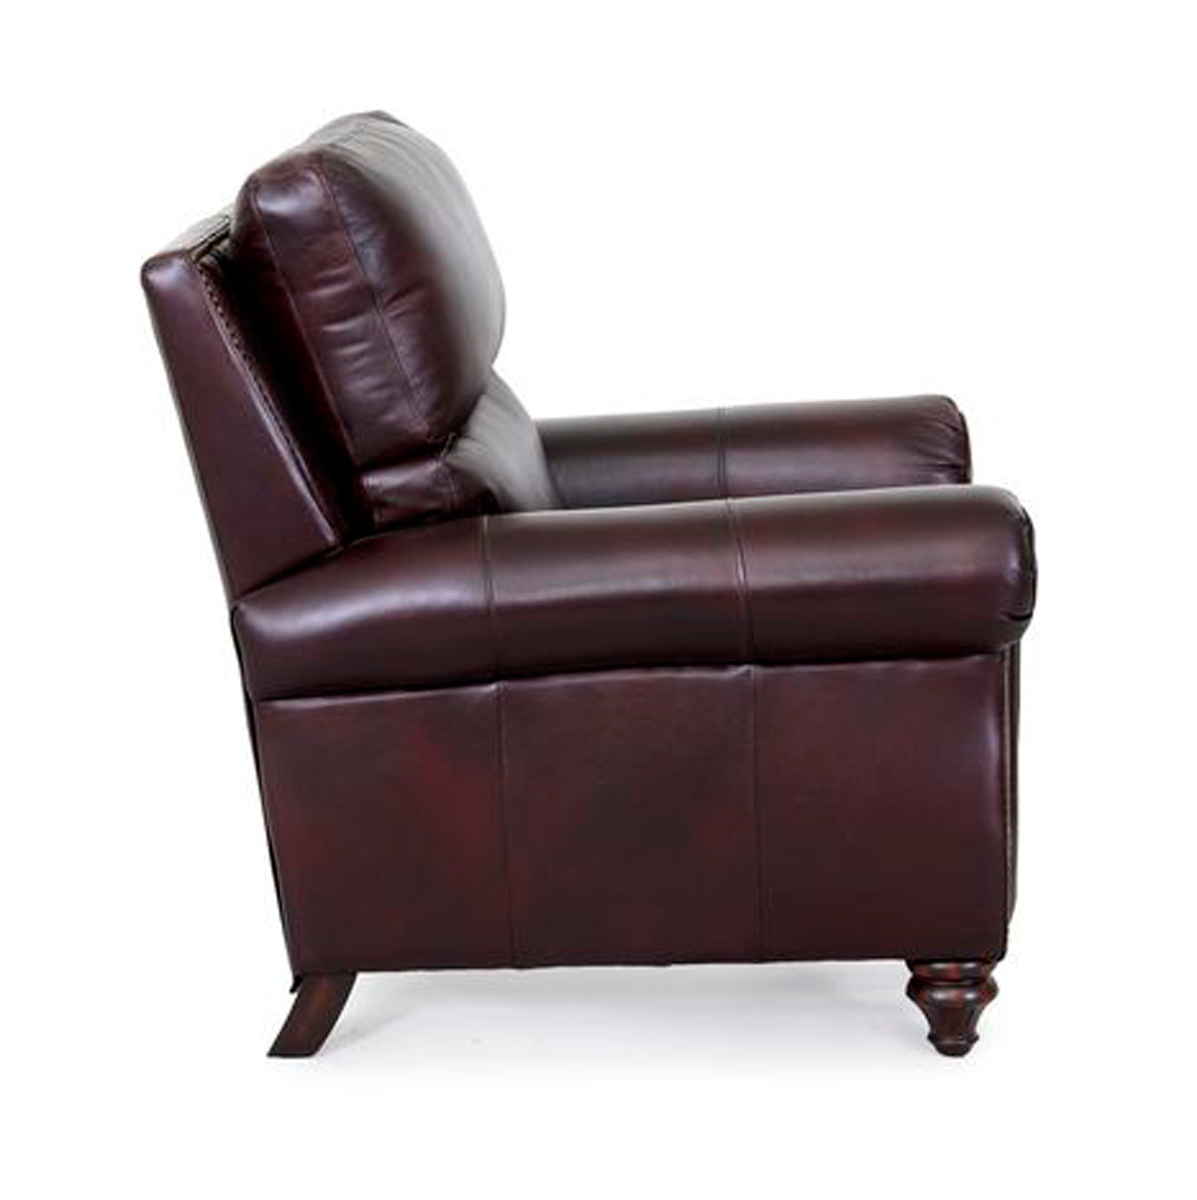 Leather Recliner Sofa Manchester: Barcalounger Dalton II Vintage Classic Recliner Chair